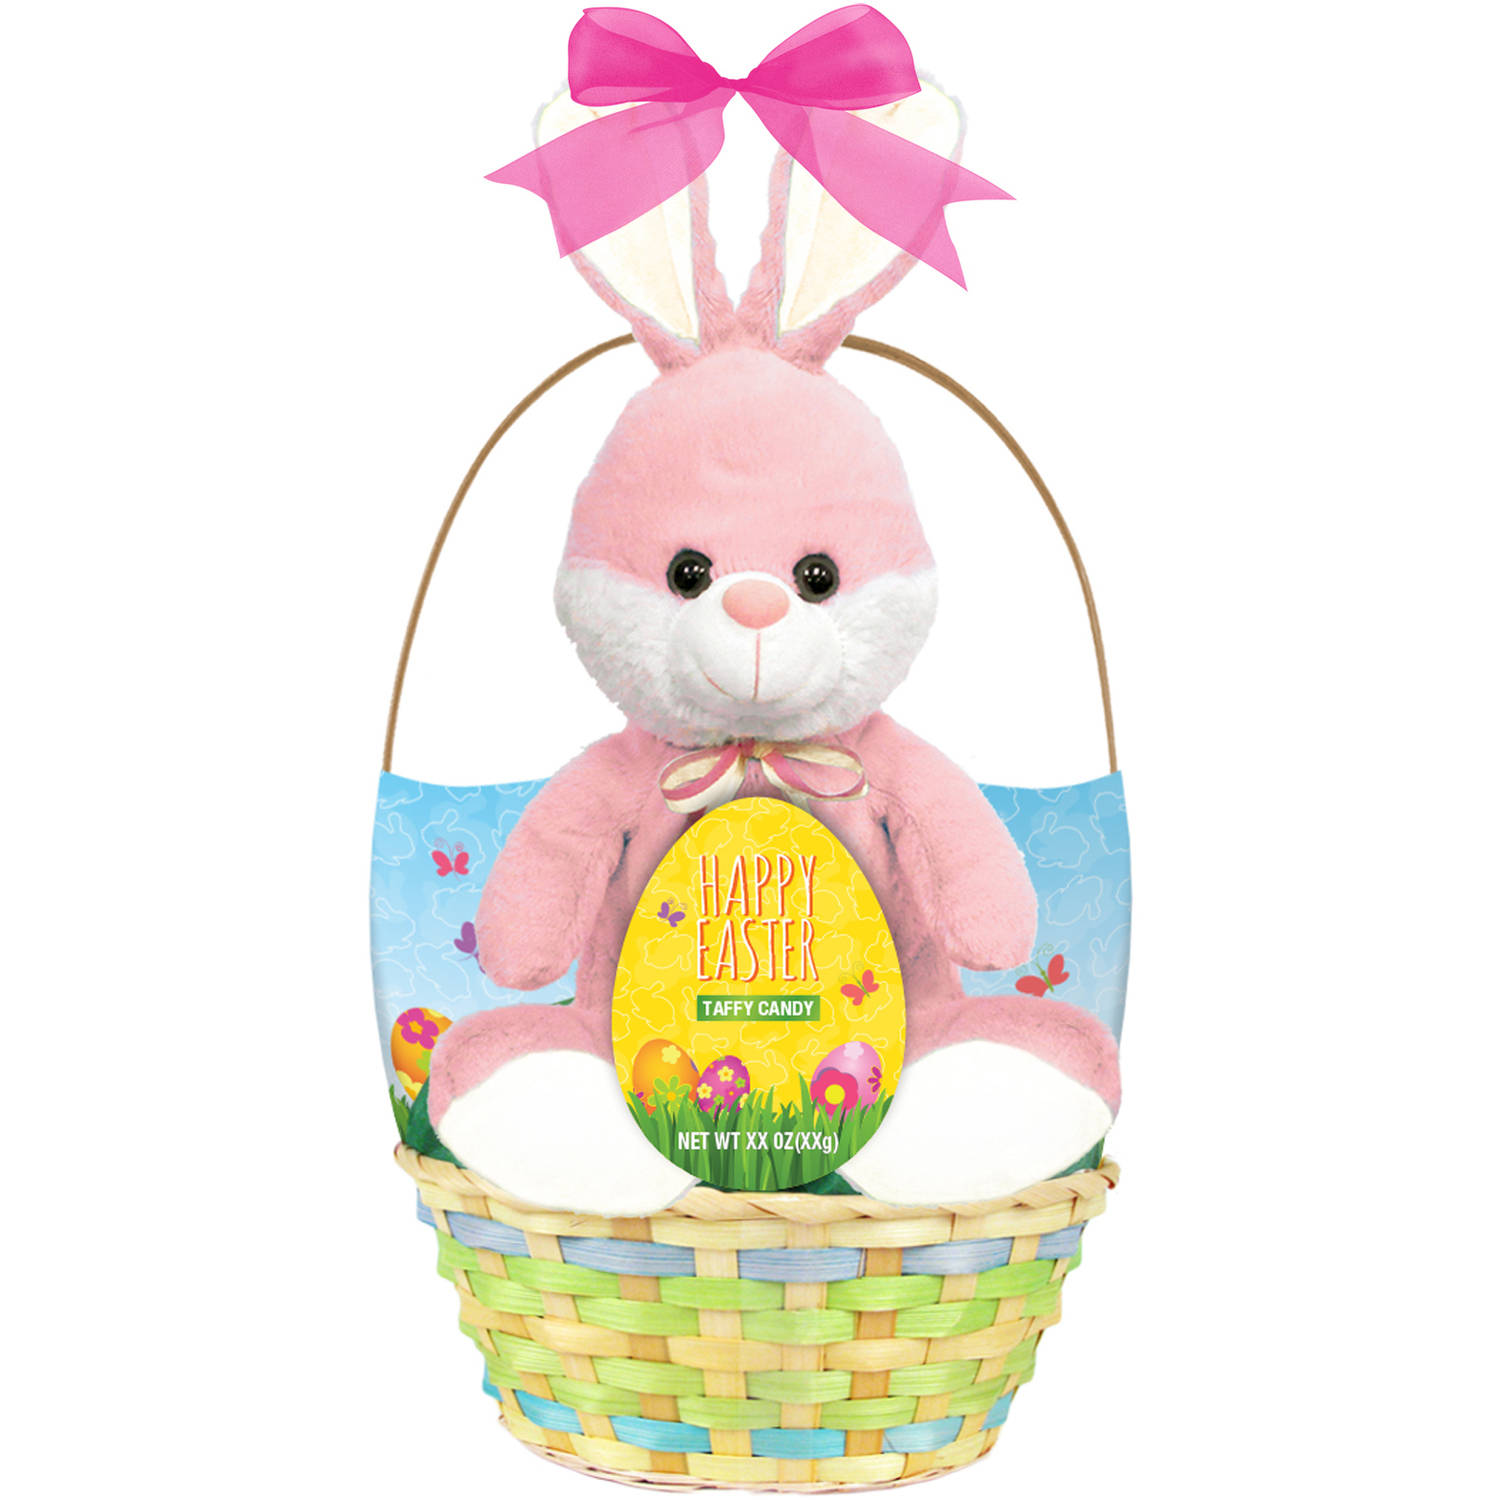 Easter Basket with Plush Animal Toy & Primrose Taffy